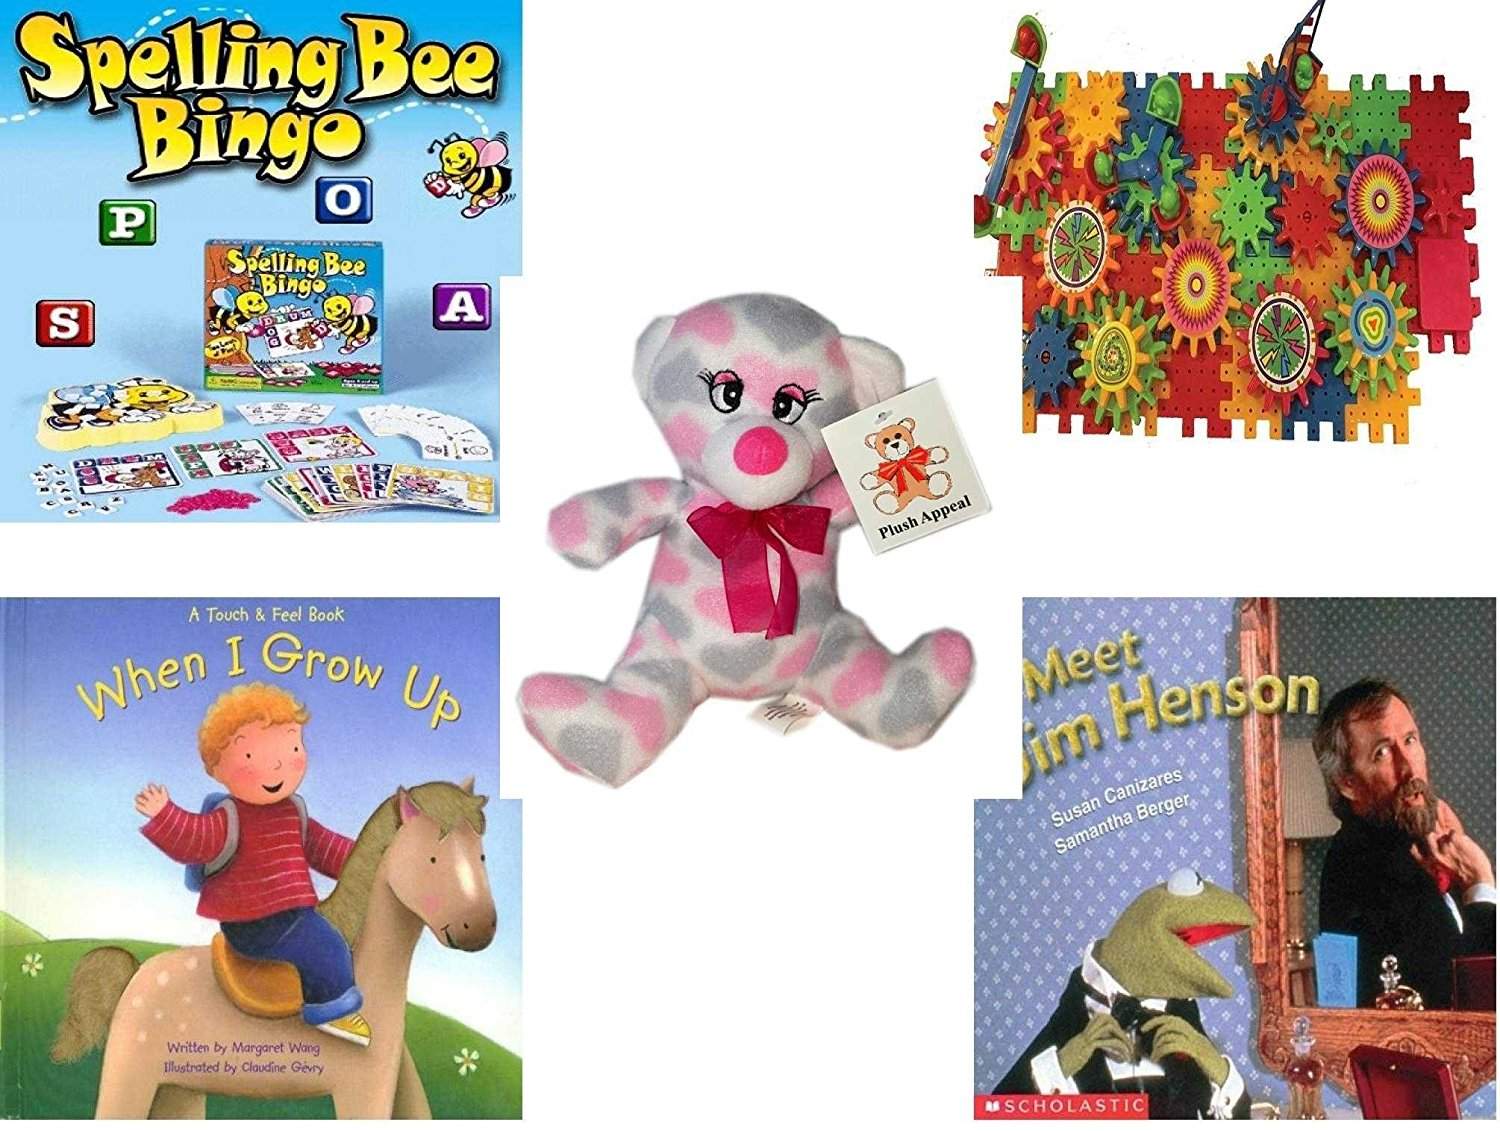 """Children's Gift Bundle - Ages 3-5 [5 Piece] - Spelling Bee Bingo Game - Play Sprockets Toy - Plush Appeal Pretty Pink and Purple Hearts Bear Plush 7"""" - When I Grow UpHardcover Book - Meet Jim Hens"""